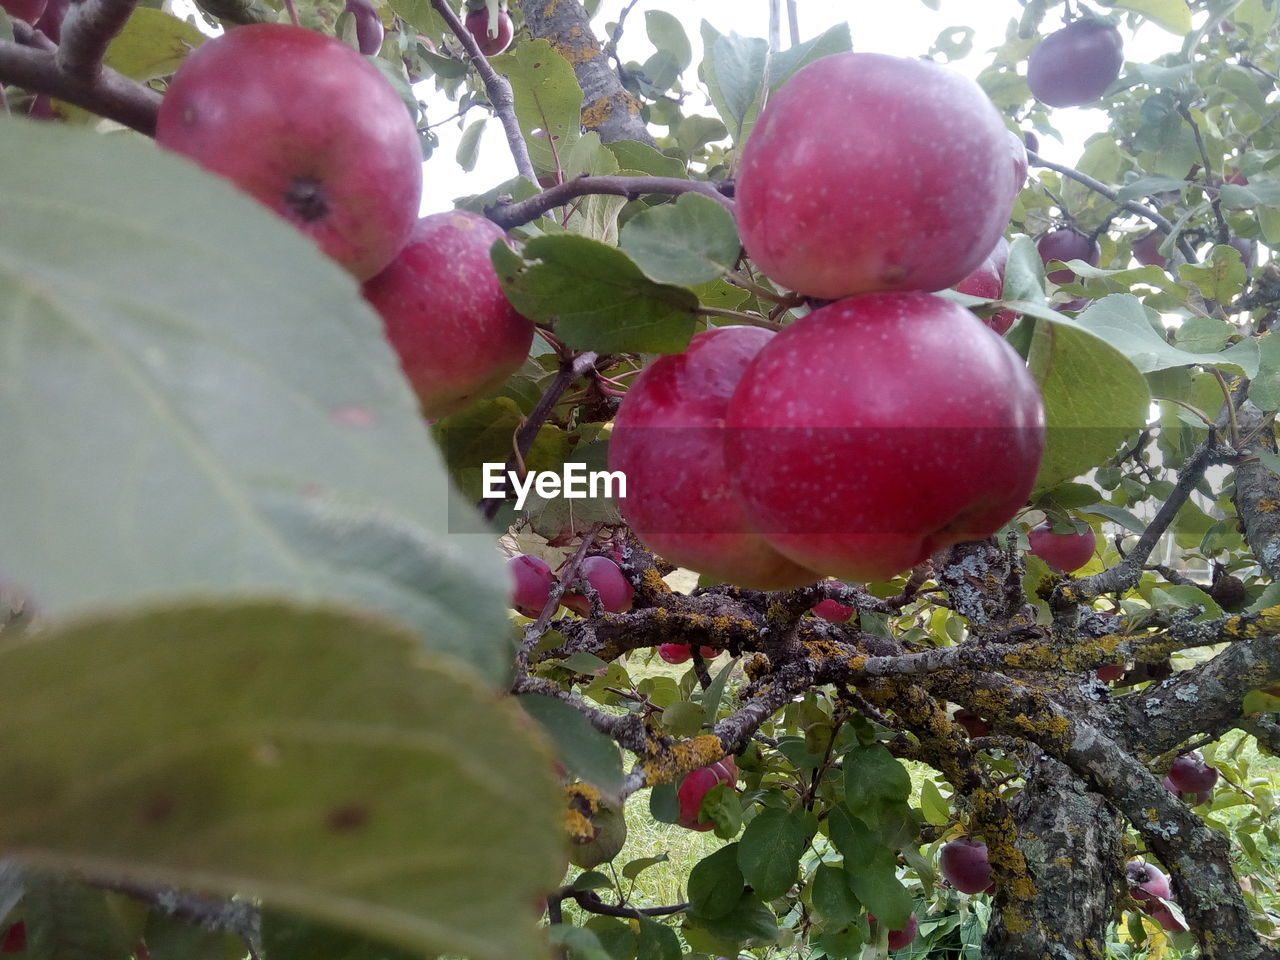 fruit, healthy eating, food and drink, food, plant part, leaf, plant, growth, red, freshness, wellbeing, tree, green color, nature, day, close-up, fruit tree, apple tree, no people, ripe, outdoors